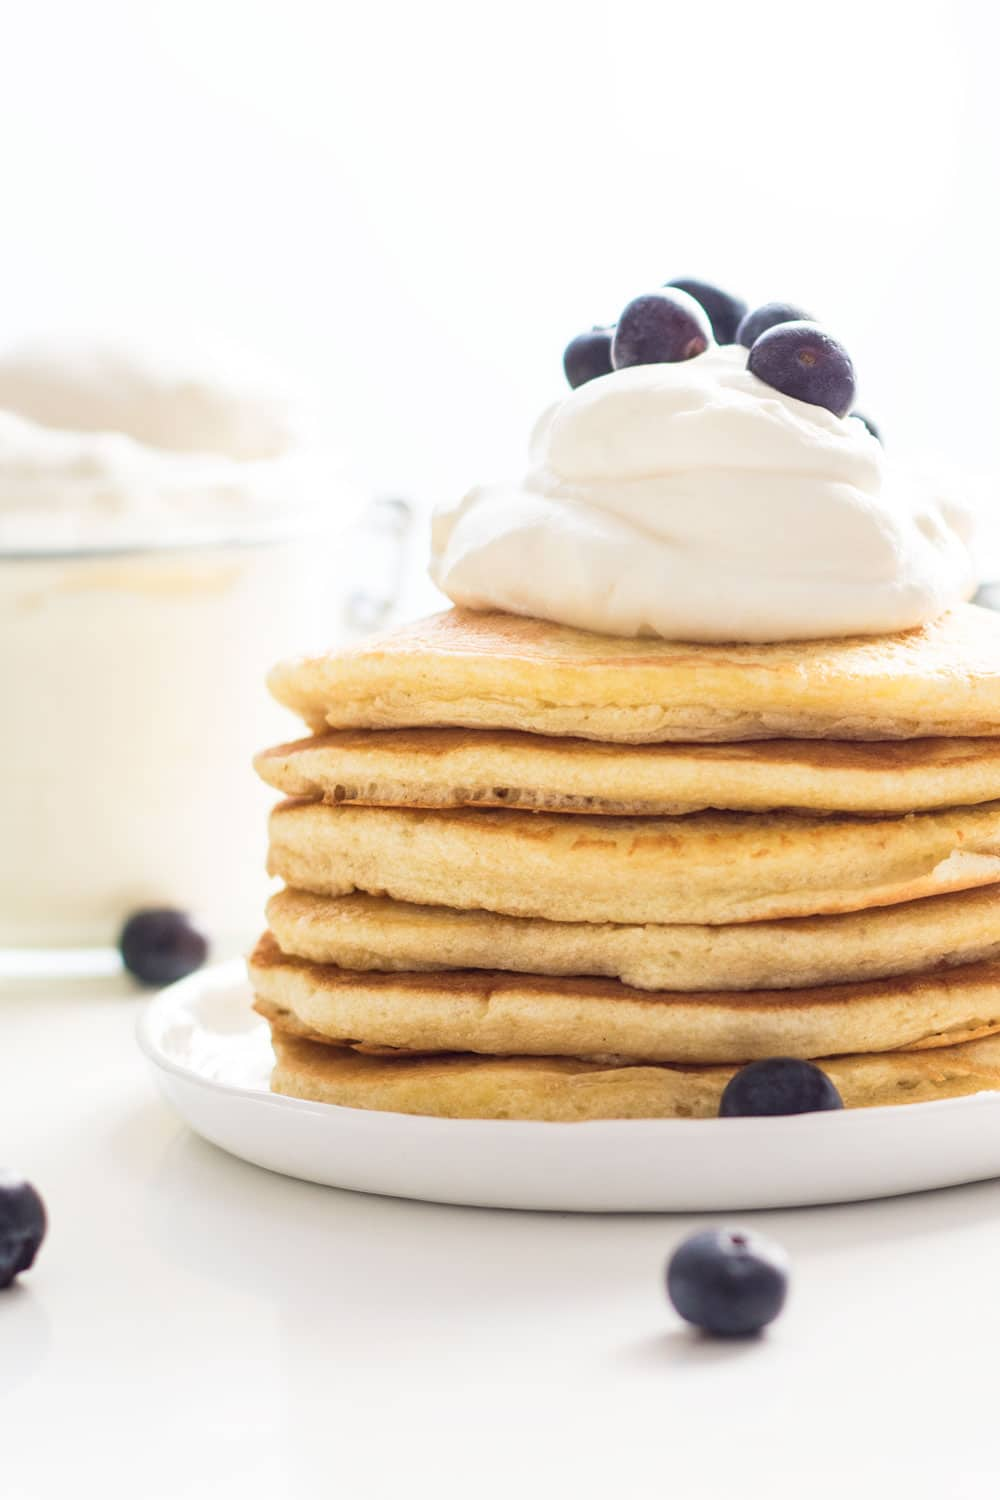 Super Duper Extra Fluffy Pancakes without baking soda or powder. Say what?! Yes, the secret ingredient: air a.k.a. stiff egg whites!